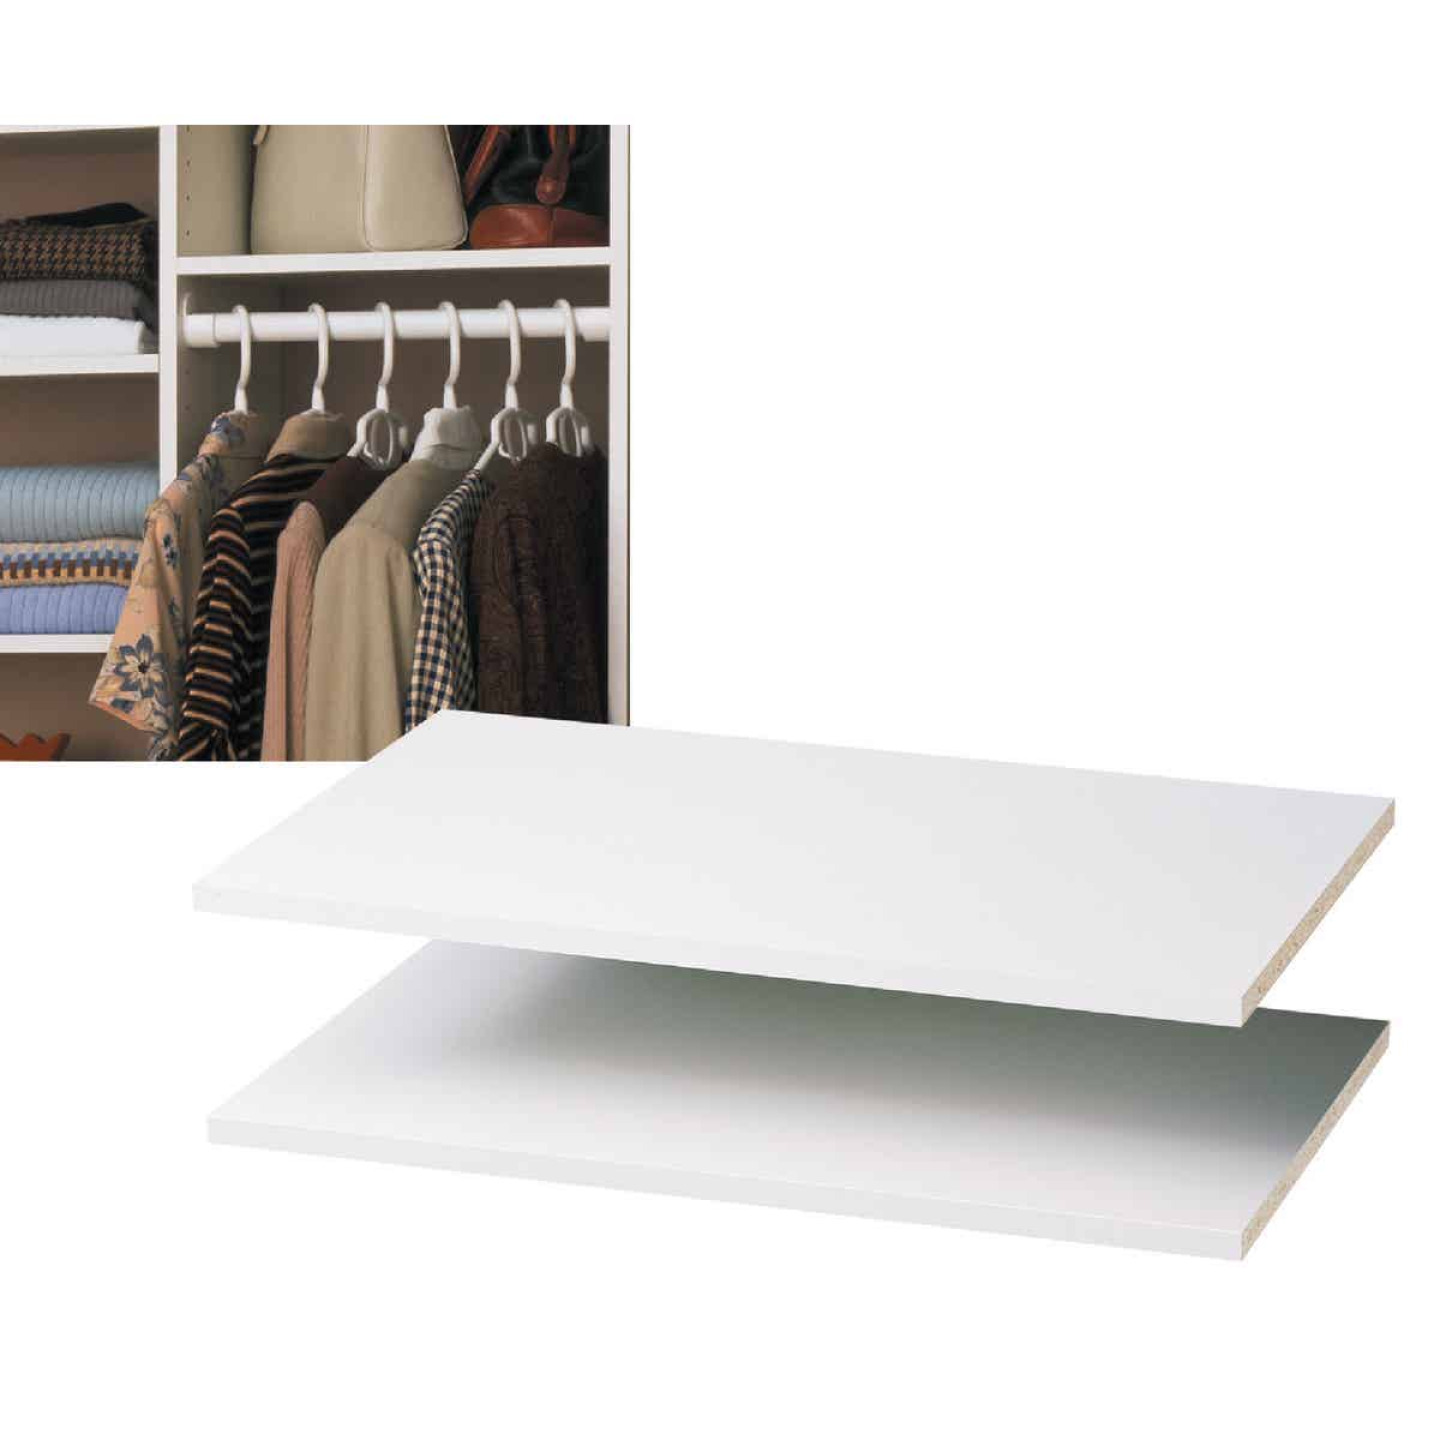 Easy Track 2 Ft. W. x 14 In. D. Laminated Closet Shelf, White (2-Pack) Image 1